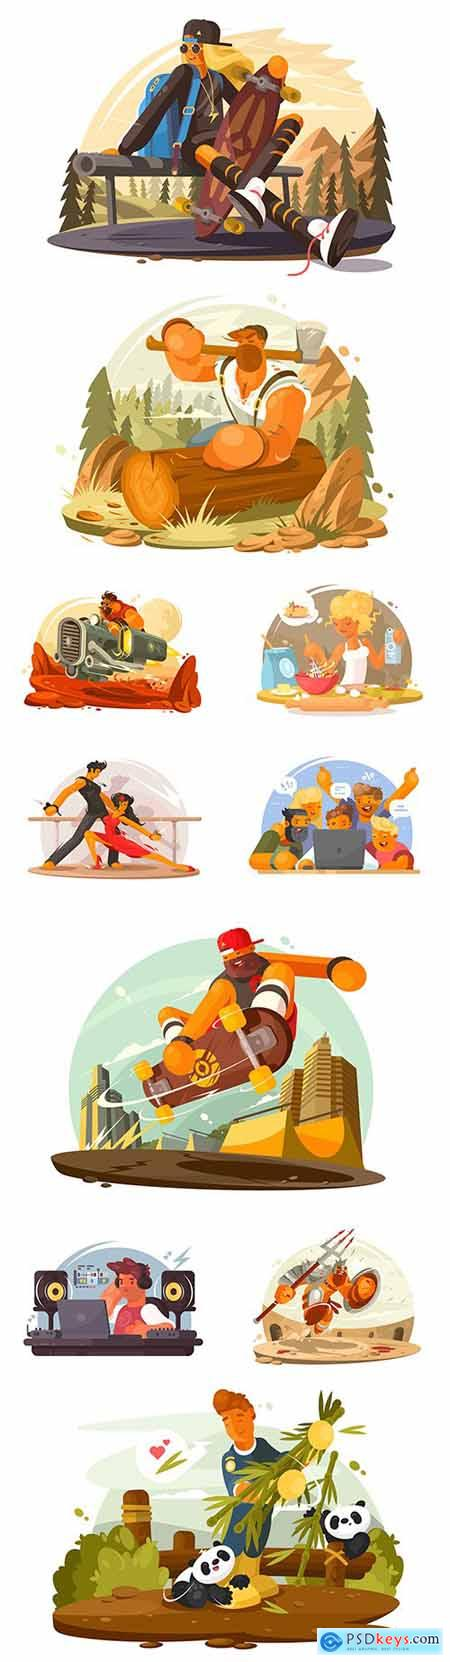 Different people at work and leisure modern design illustration 2